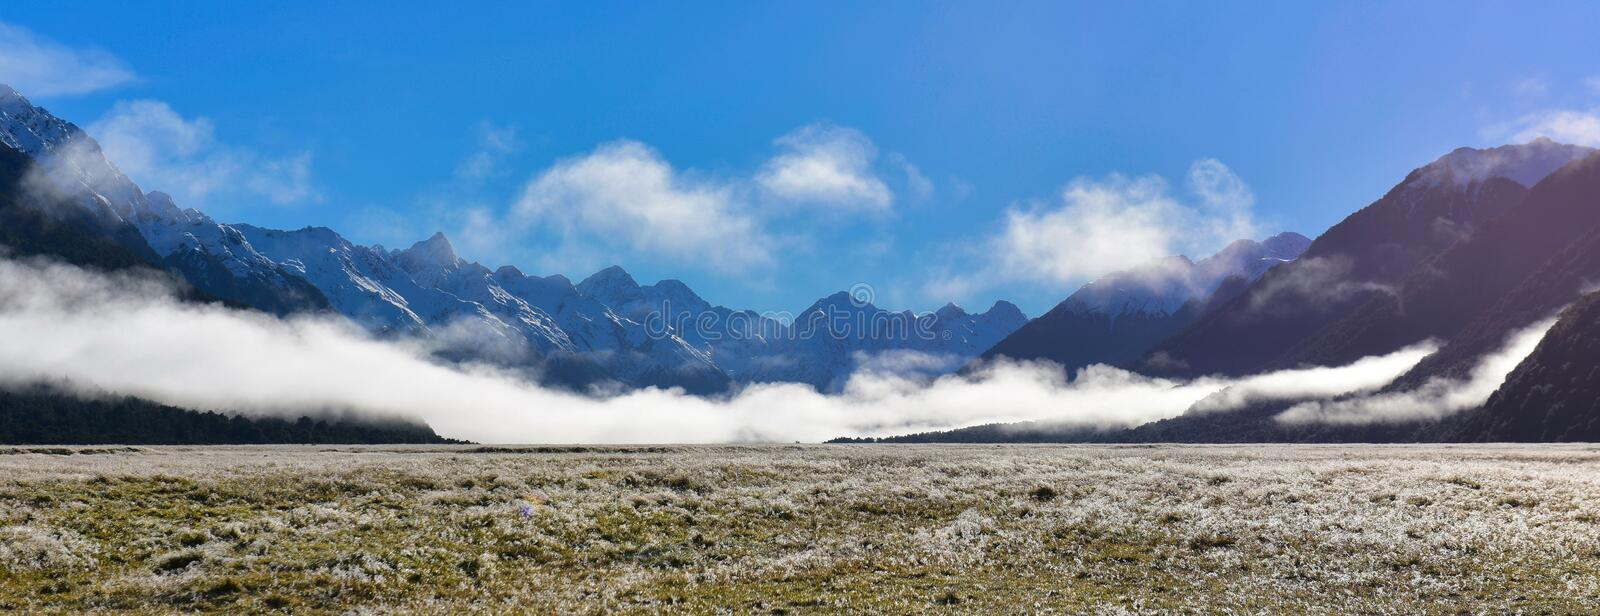 White low lying clouds and snow mountains in New Zealand stock photos